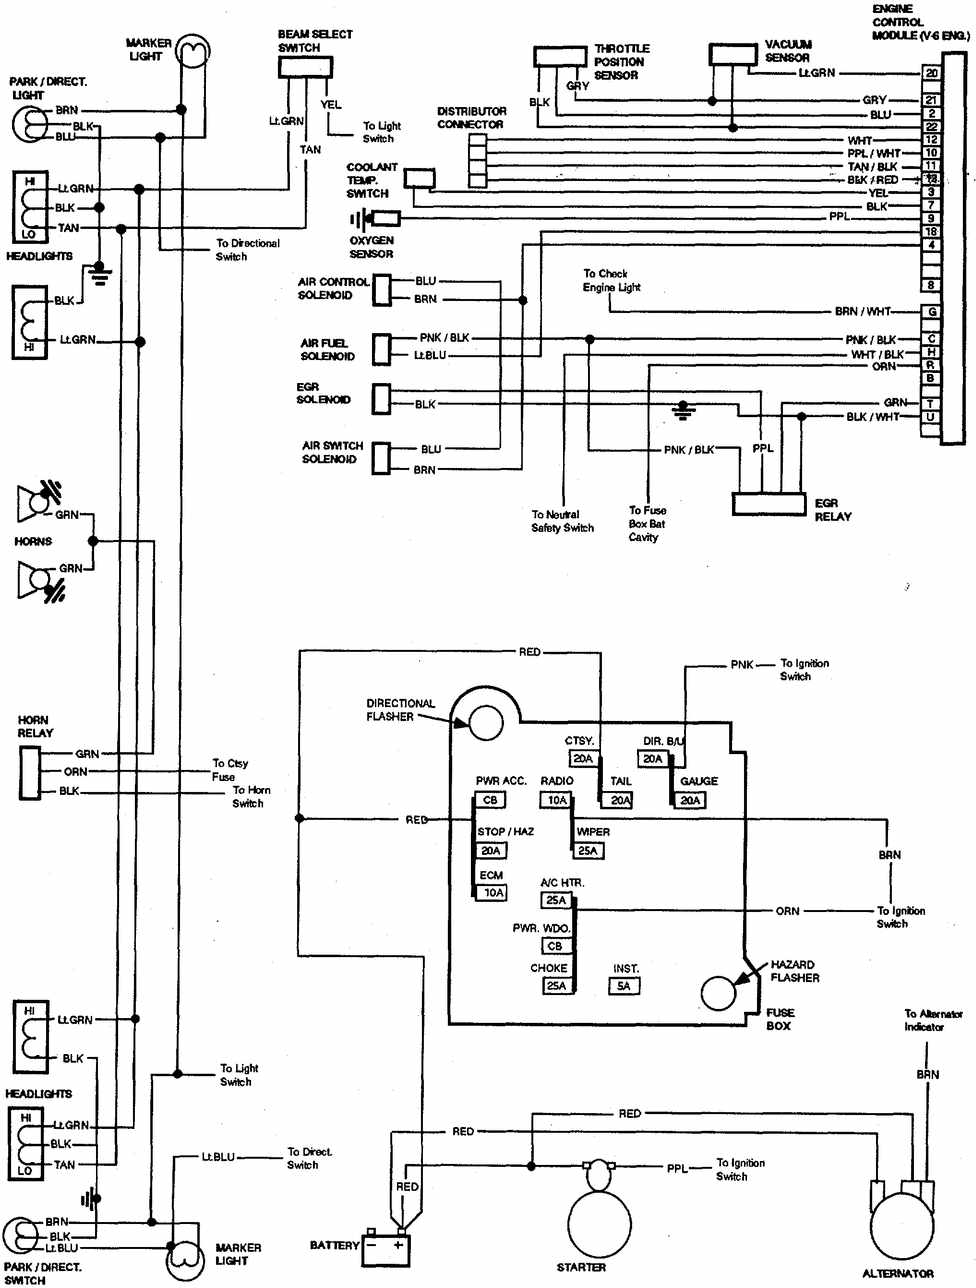 1989 chevrolet k1500 wiring diagram